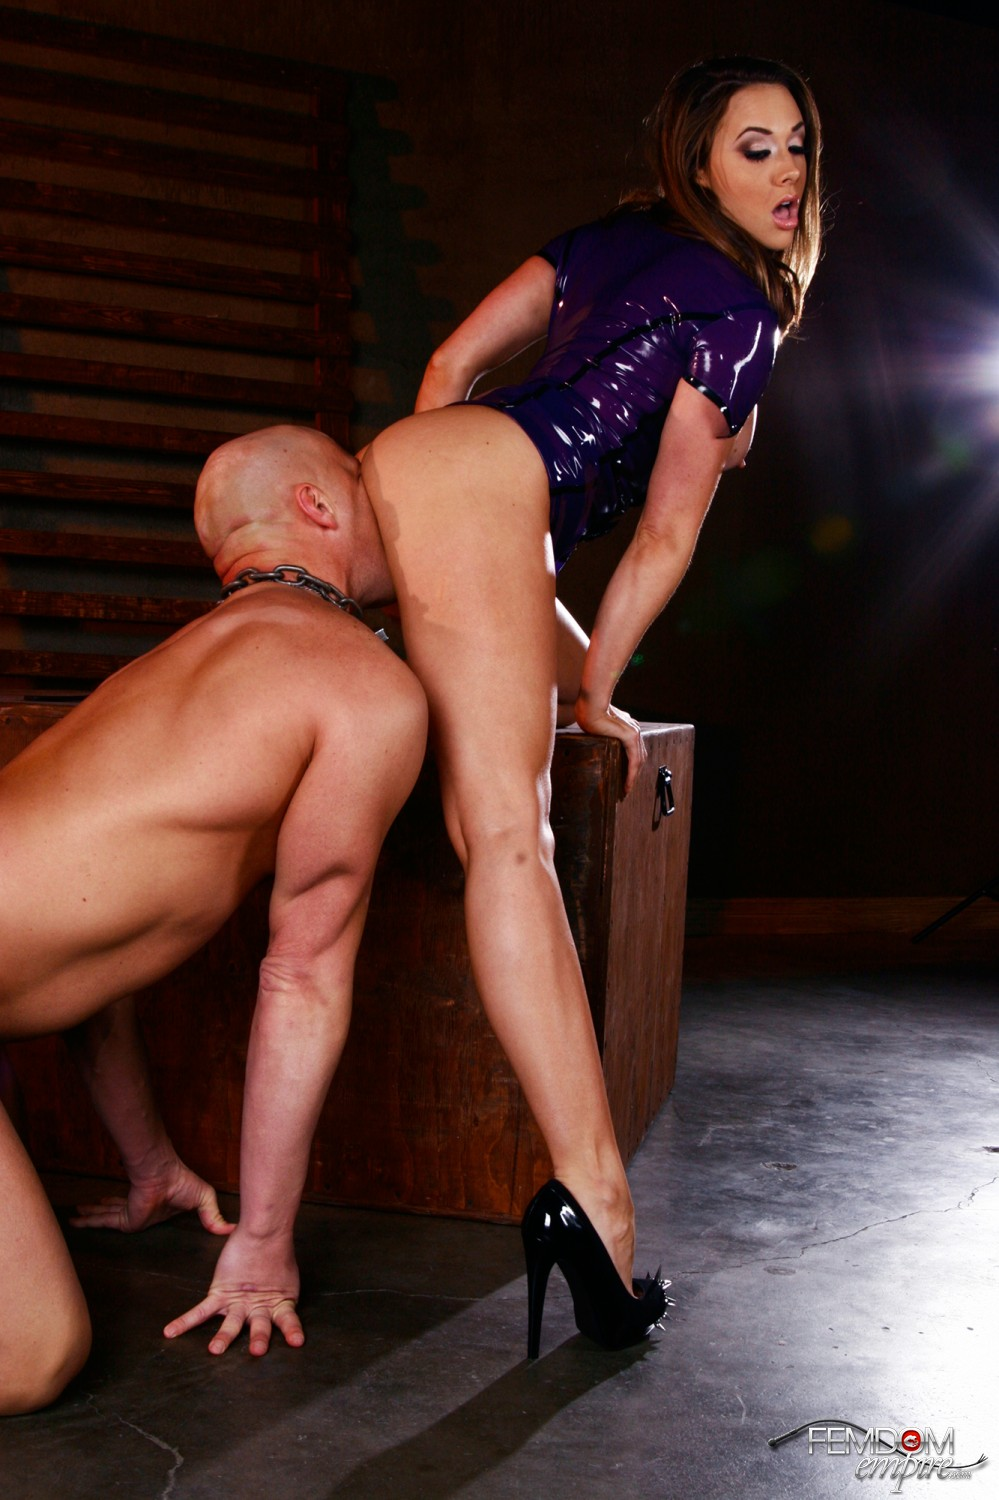 Female domination picturess free hot love